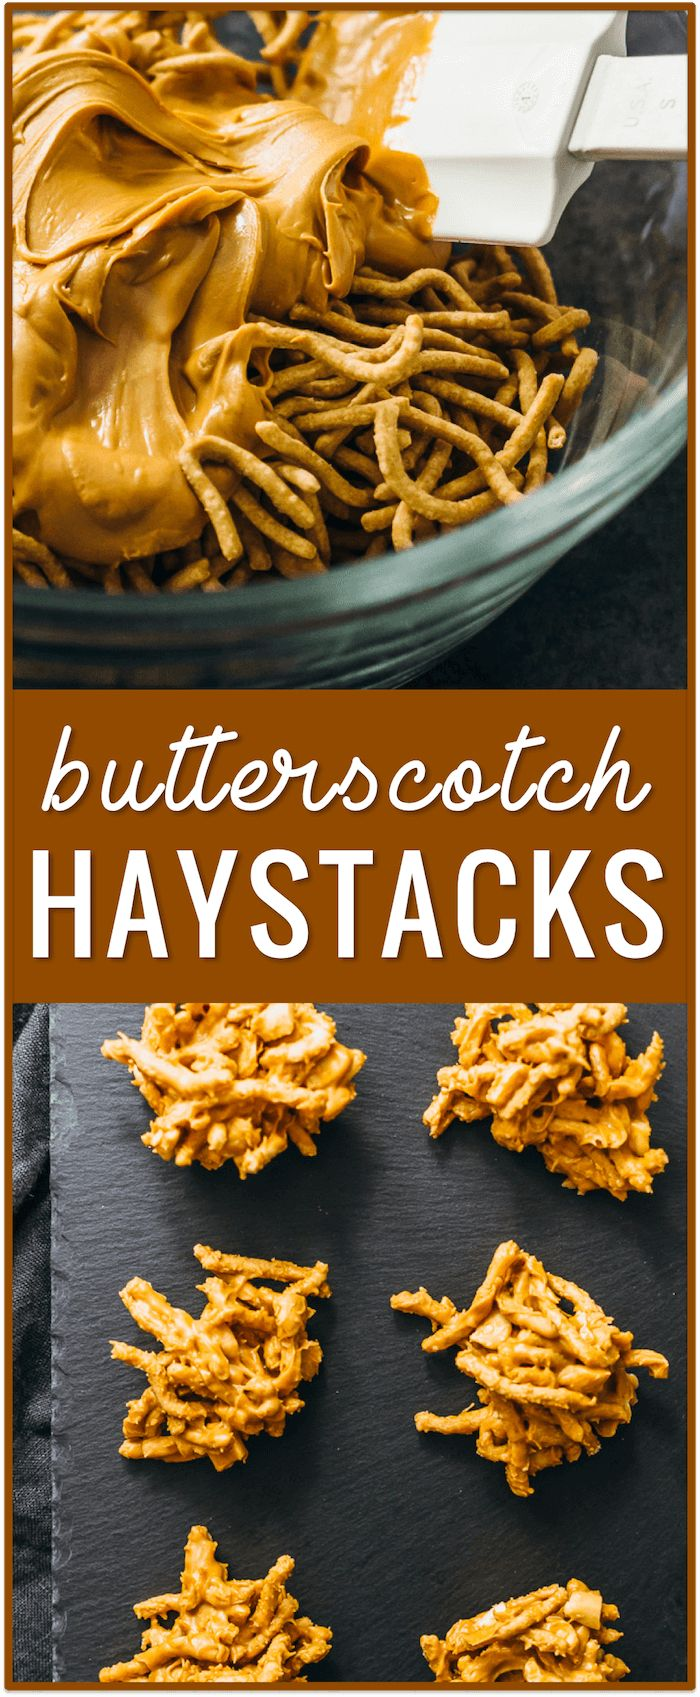 butterscotch haystacks with chow mein noodles, recipe, easy, dessert, marshmallows, peanut butter, christmas, pretzels, chocolate, no nuts, toll house, cookies via @savory_tooth